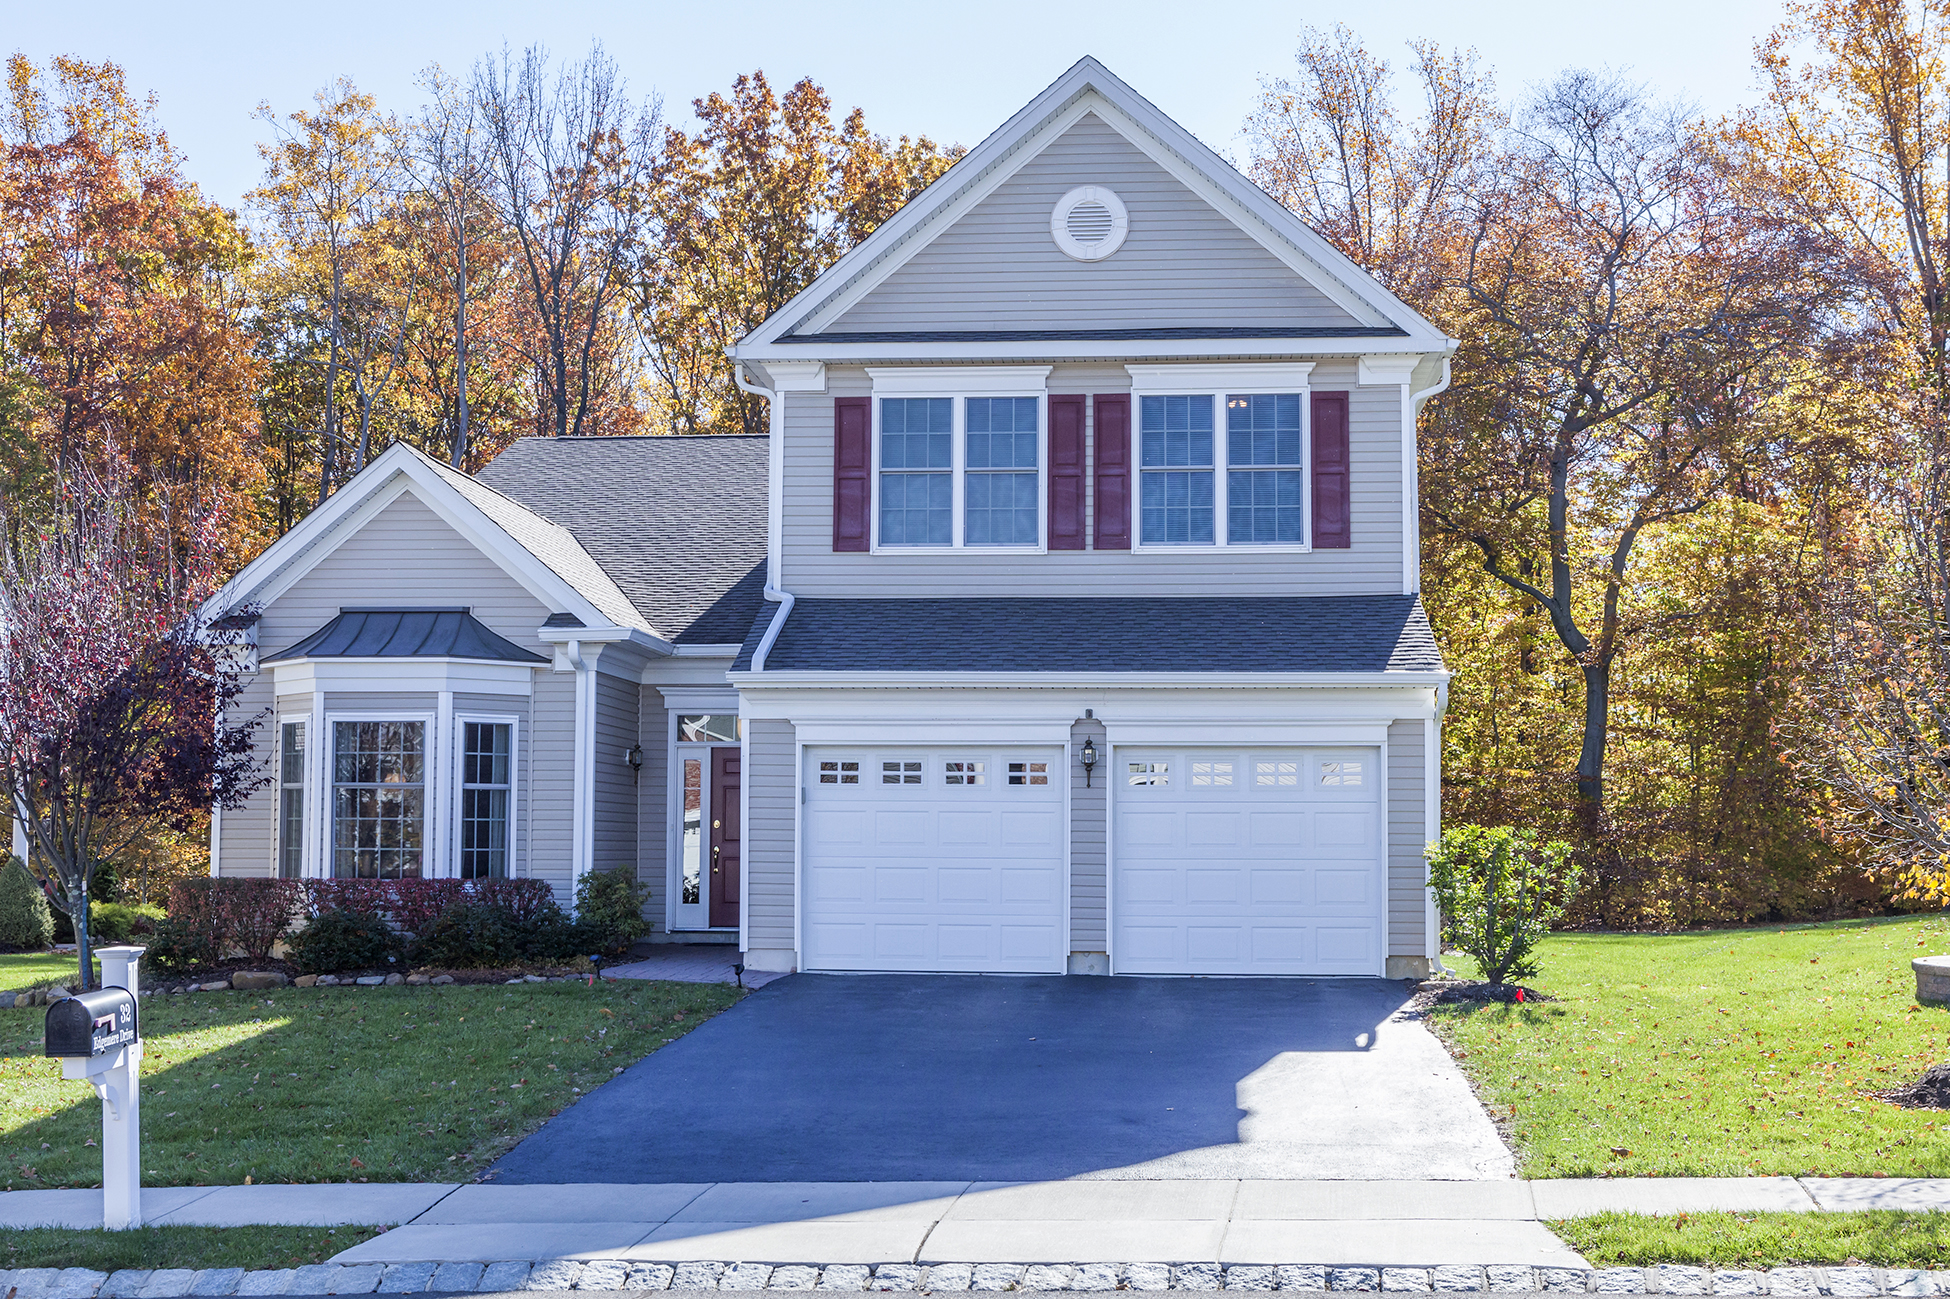 Single Family Home for Sale at Sun-Washed Elegance in Princeton Manor - South Brunswick Township 32 Edgemere Drive Kendall Park, New Jersey, 08825 United States